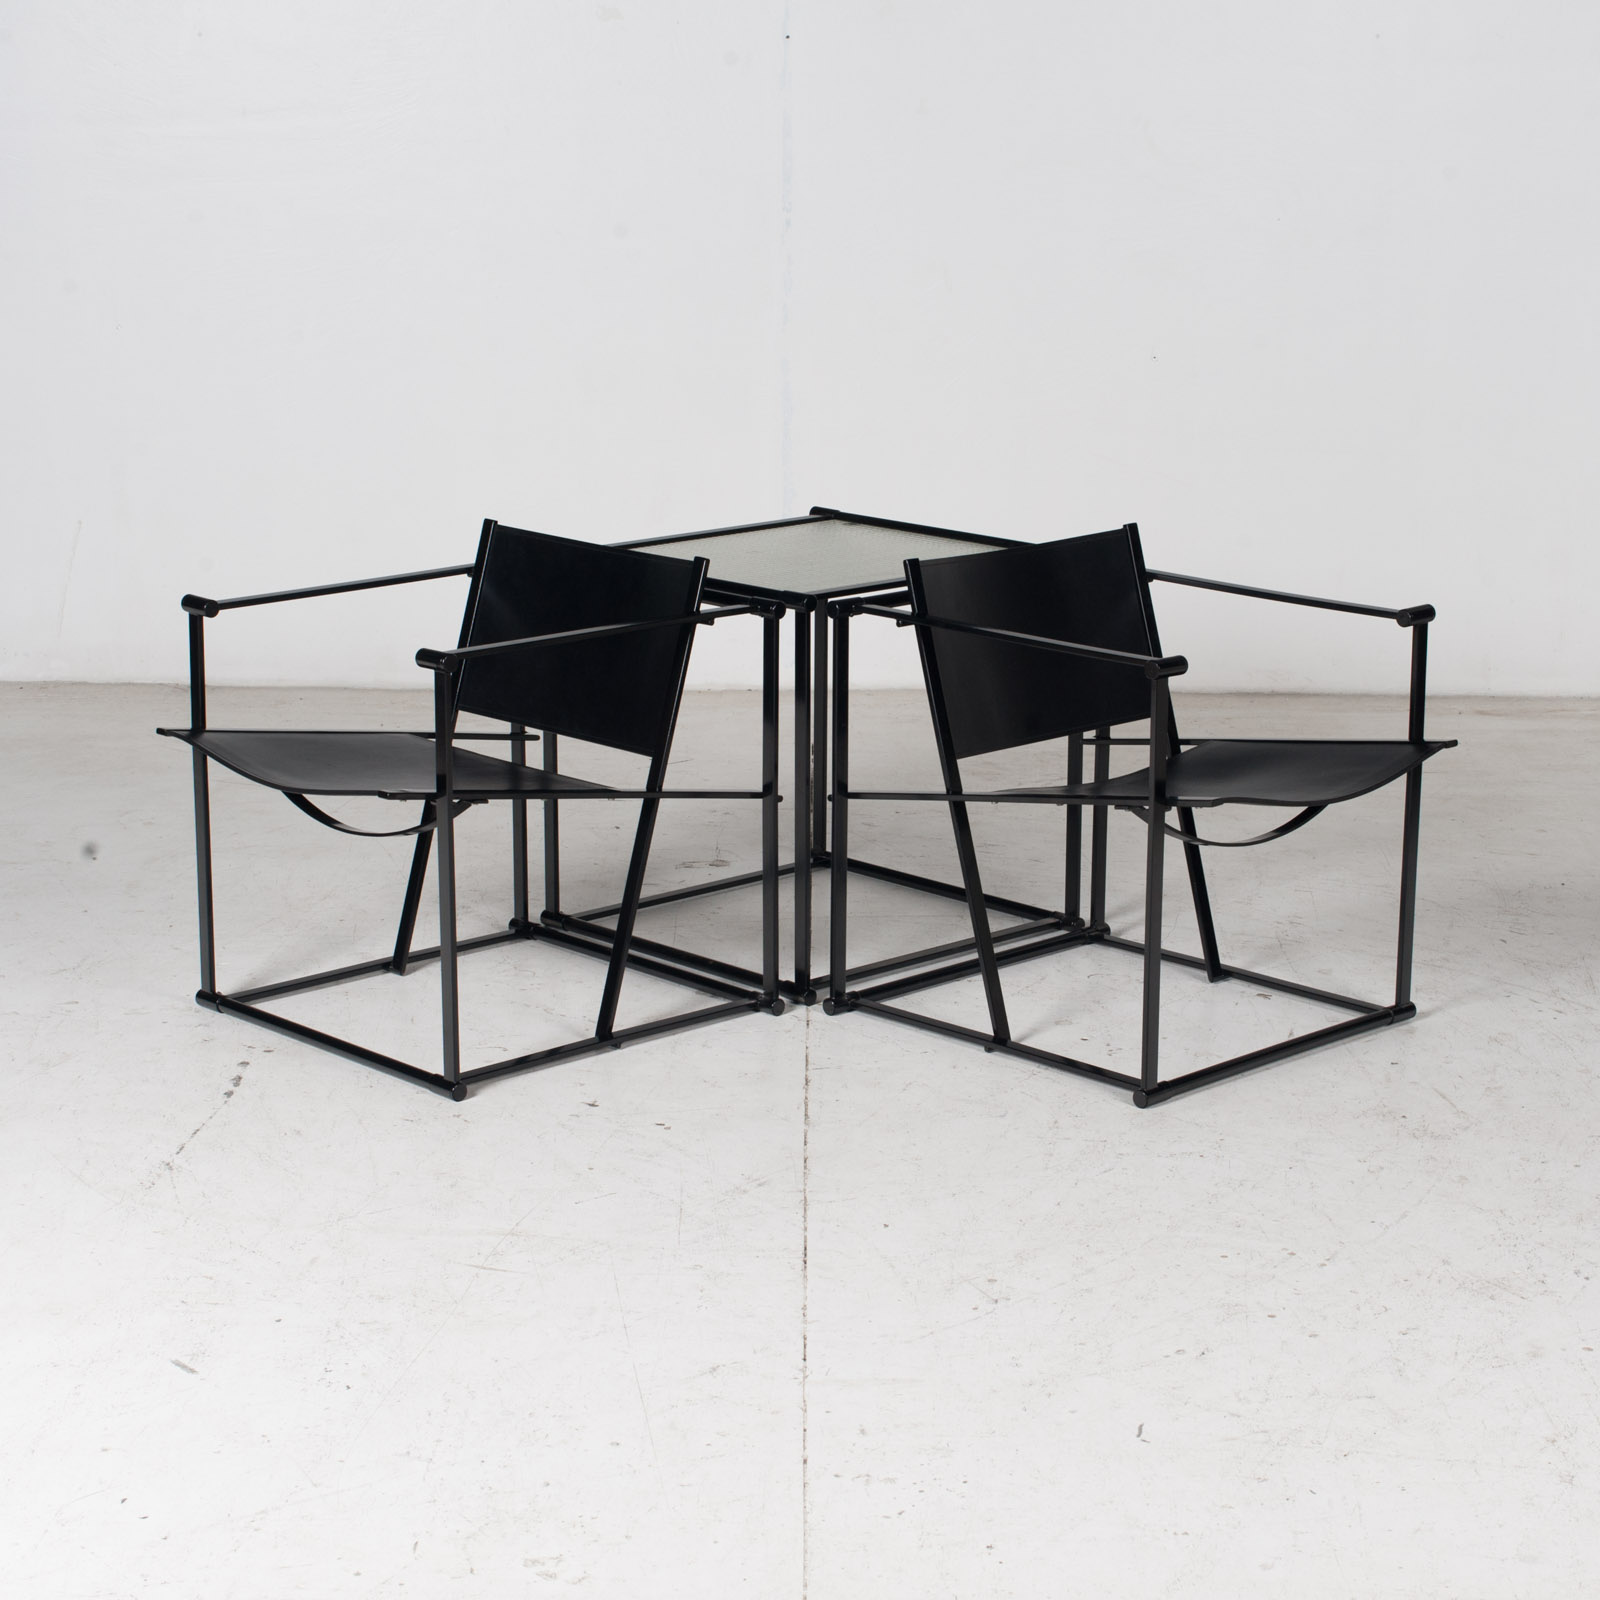 Pair Of Fm60 Cubic Chairs With Table By Radboud Van Beekum For Pastoe, 1980s, The Netherlands 19